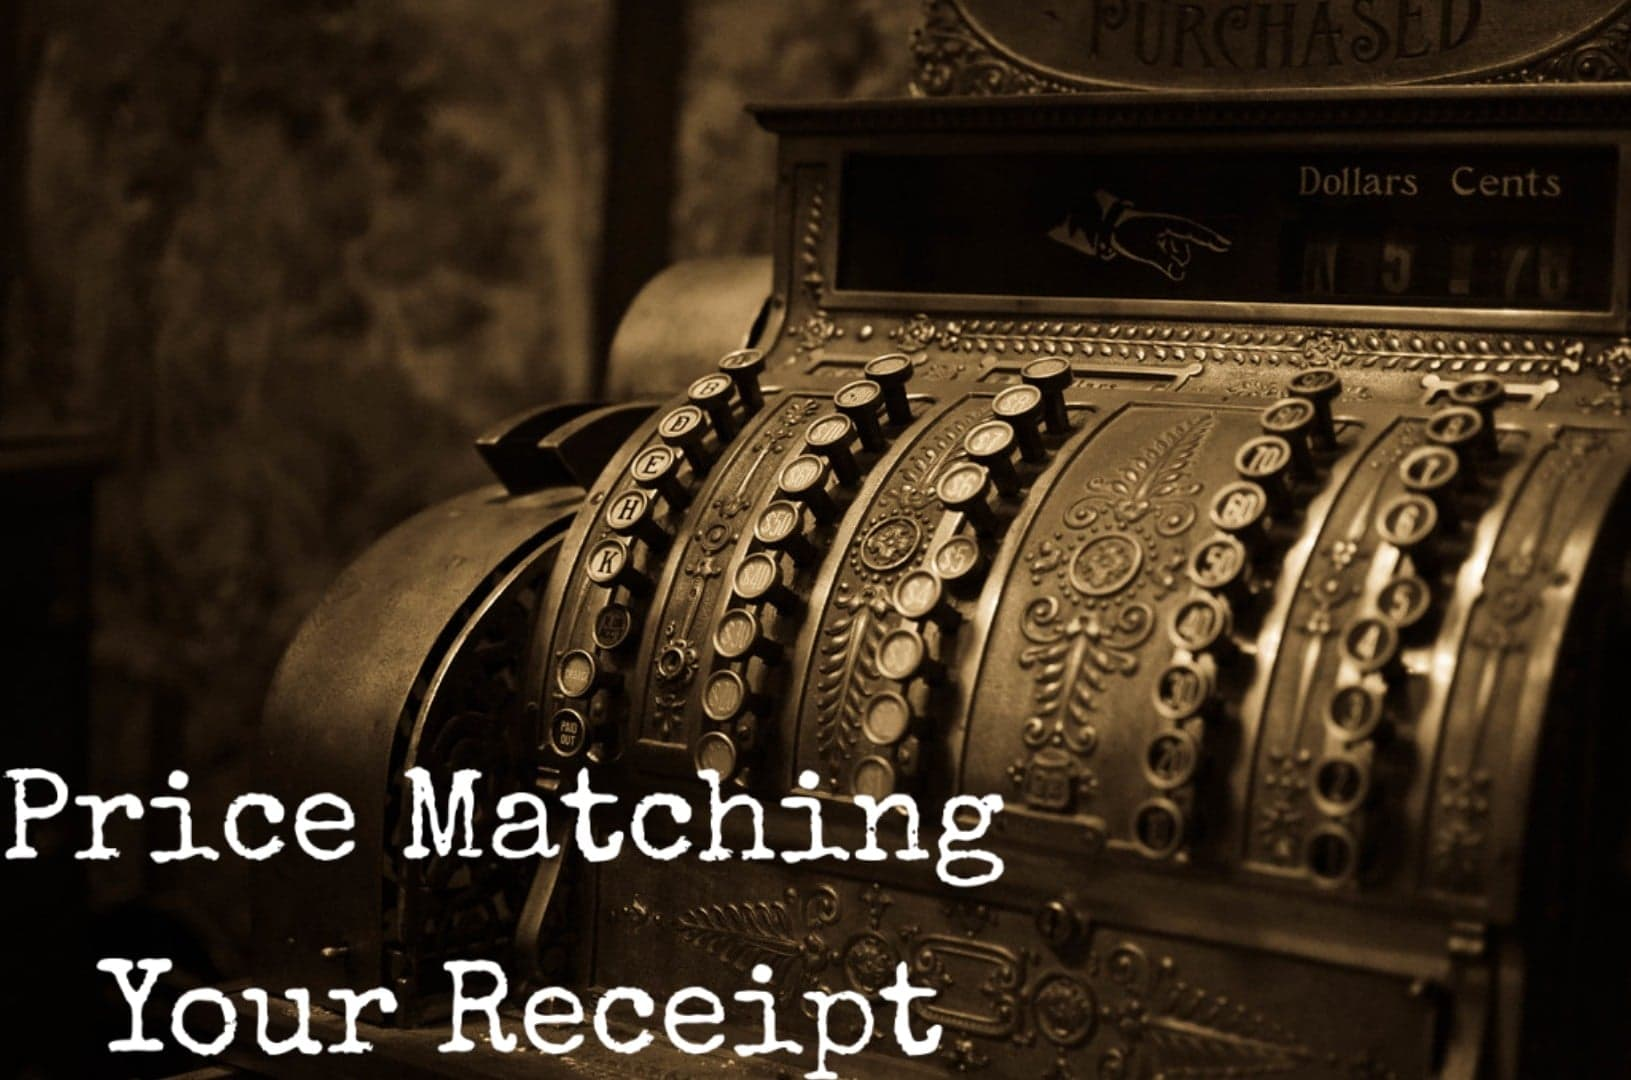 Price Matching Your Receipt